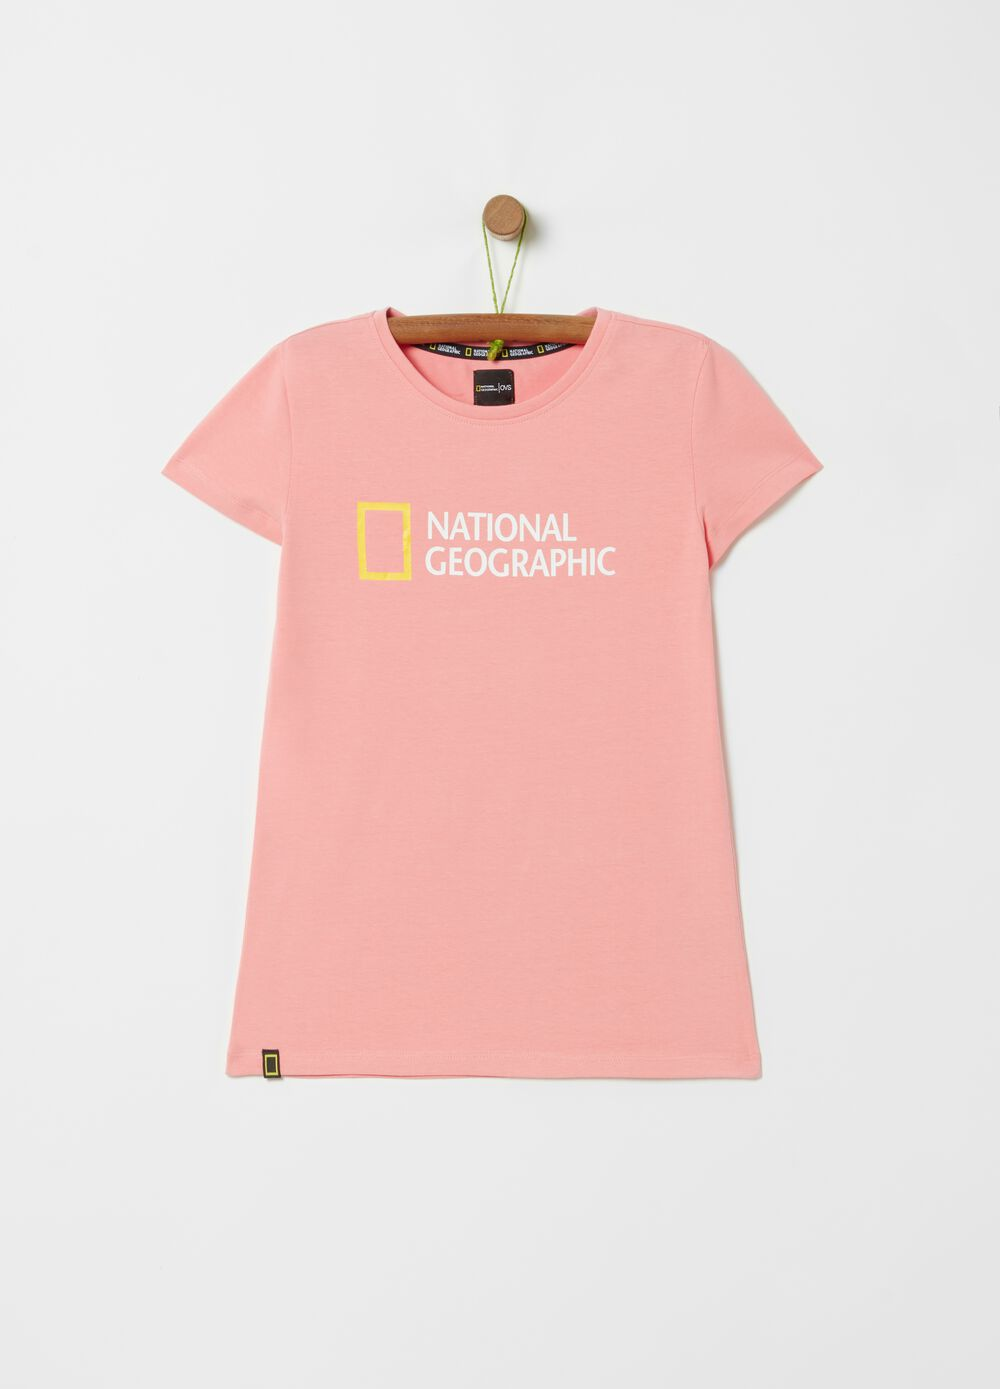 National Geographic stretch T-shirt